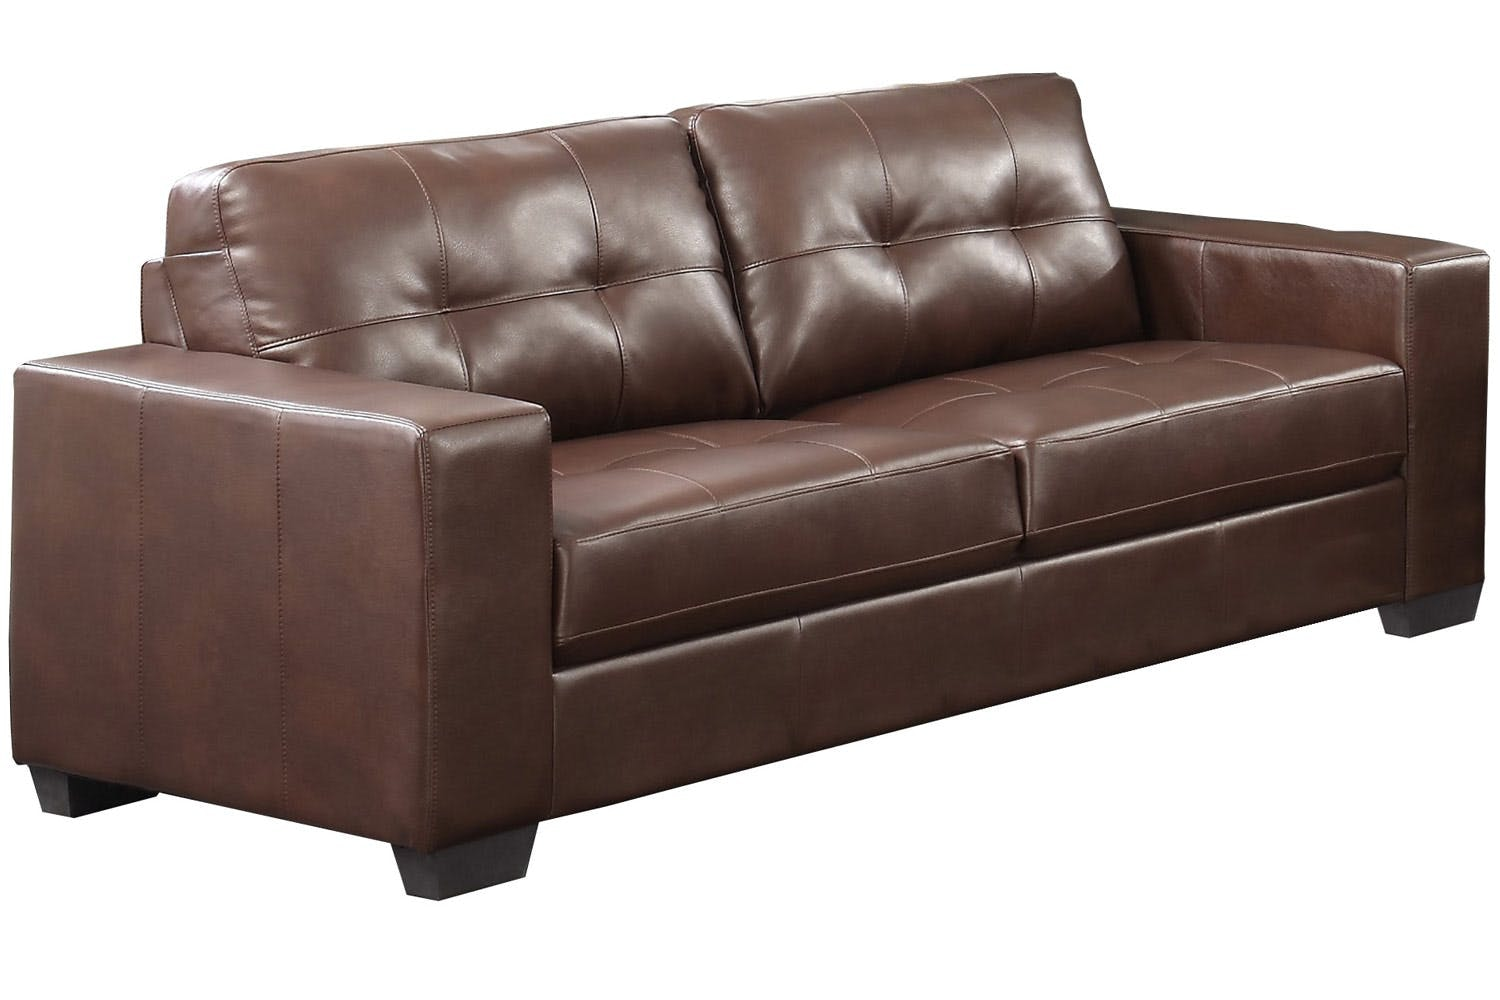 Caruba 3-Seater Sofa | Brown